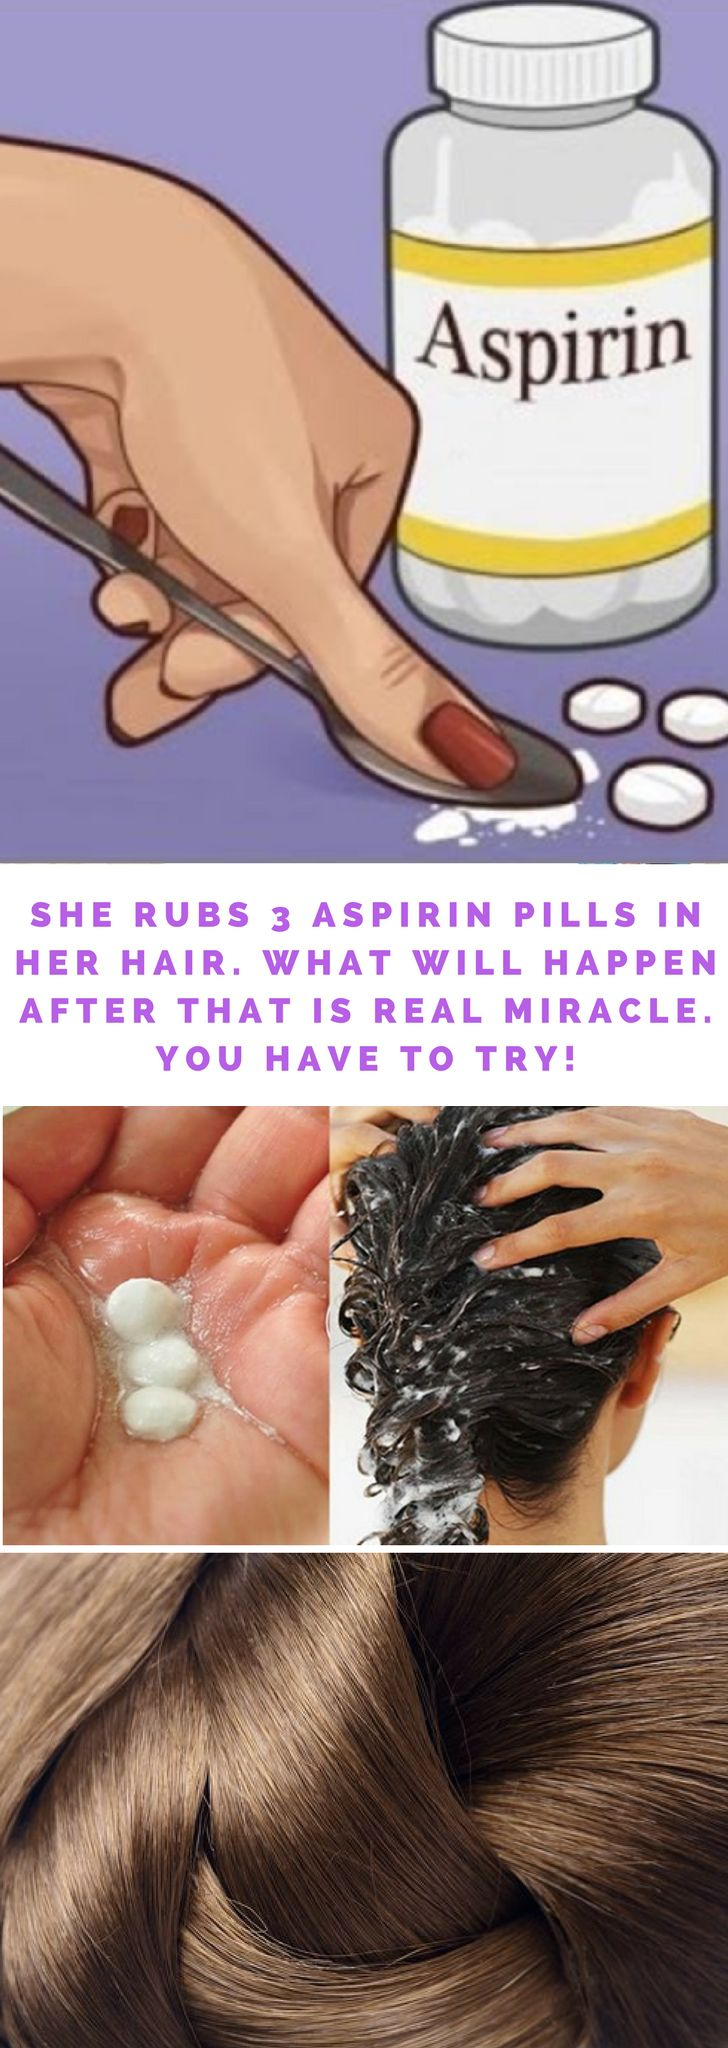 She rubs 3 aspirin pills in her hair. What will happen after that is real miracle. You have to try! fat loss diet